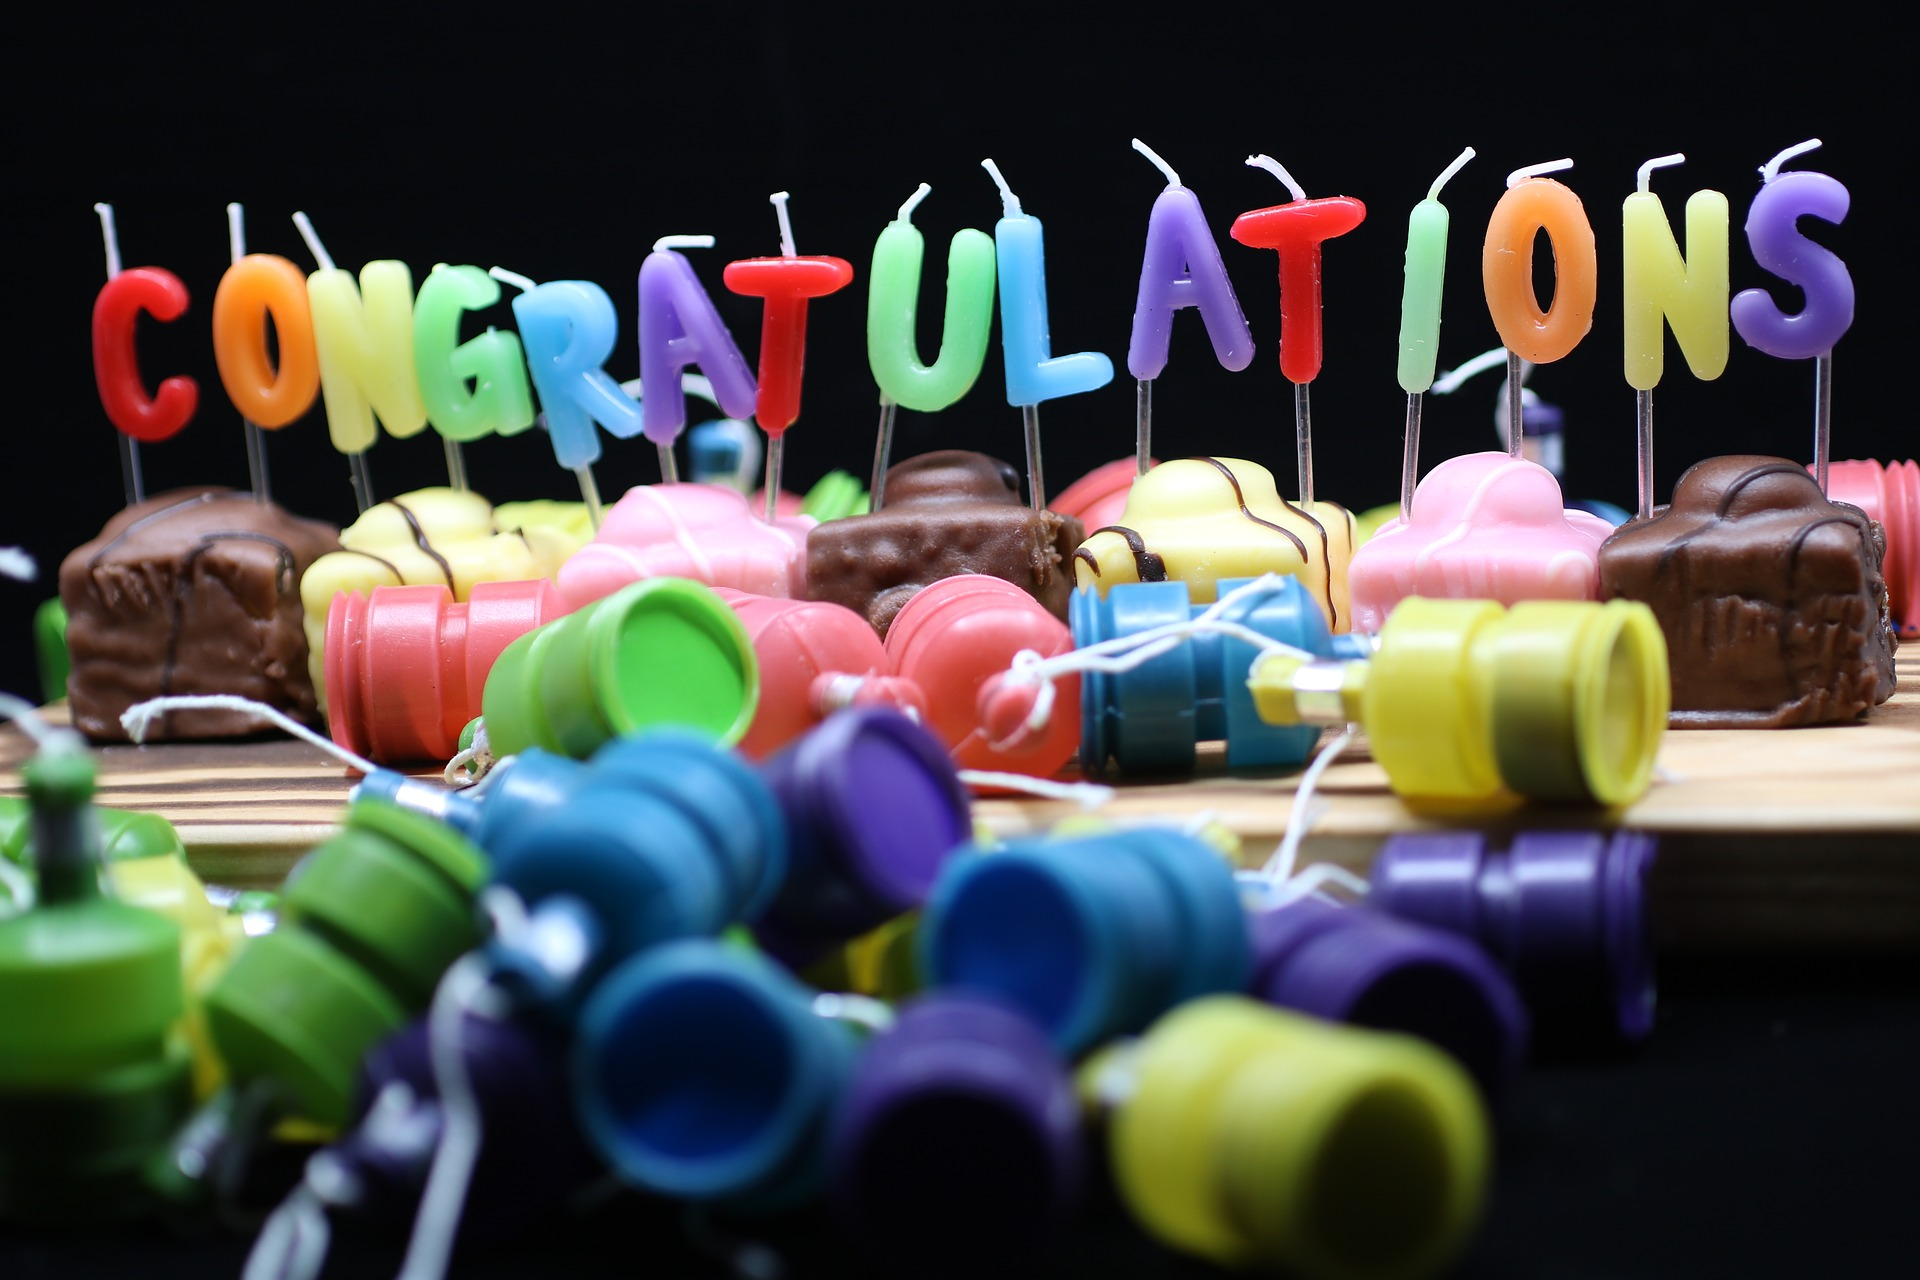 """Candles spelling out """"congratulations."""""""